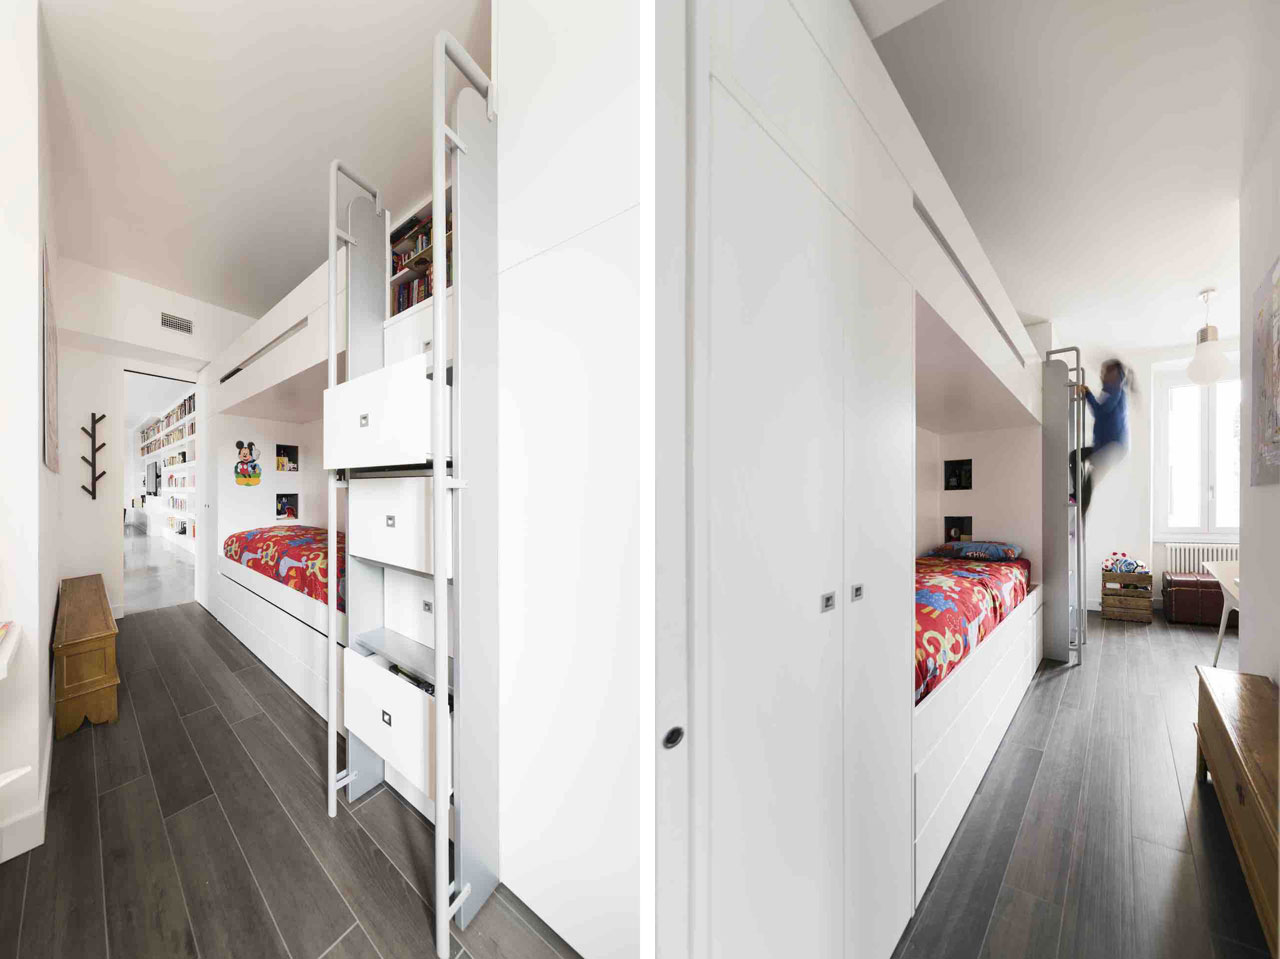 In the kids' bedroom, the block formed by the bunk beds and the built-in cupboards visually extends the bookcase in the living room